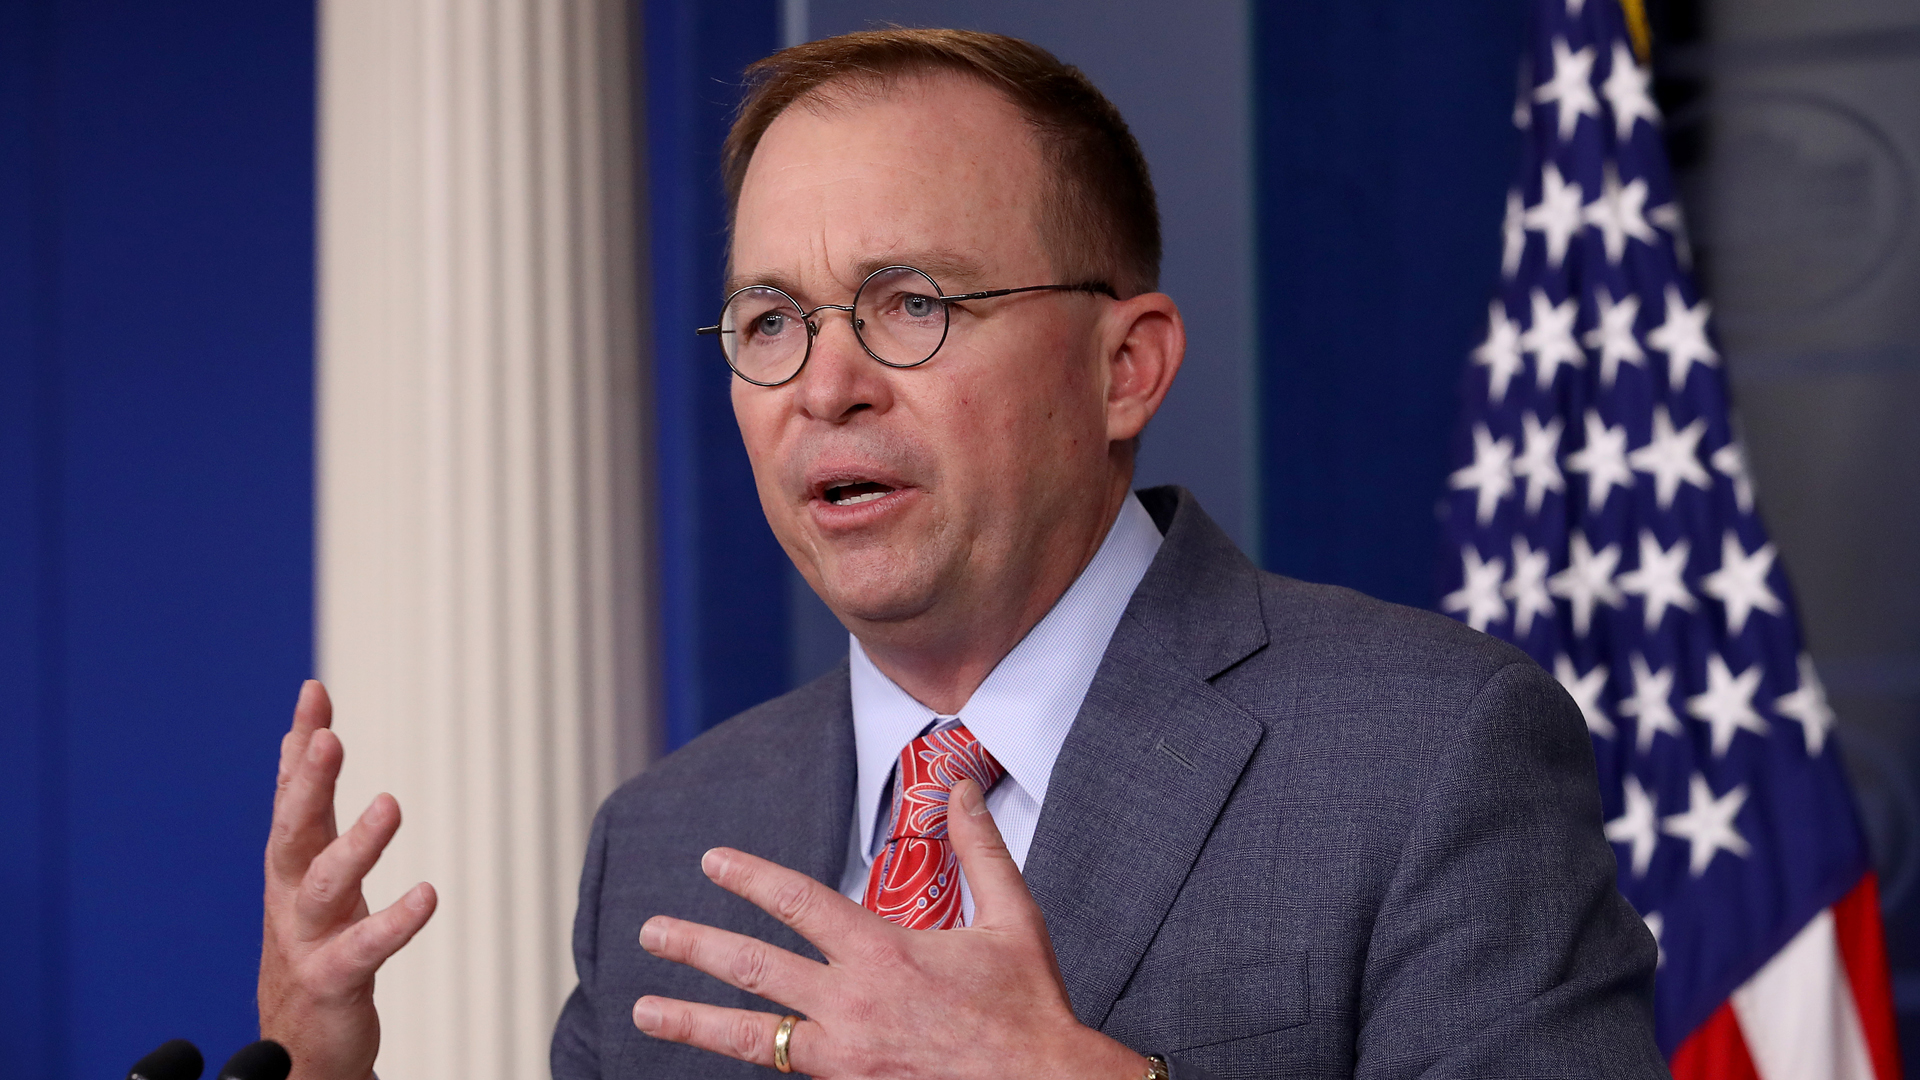 Acting White House Chief of Staff Mick Mulvaney answers questions during a briefing at the White House October 17, 2019 in Washington, DC. Mulvaney answered a range of questions relating to the issues surrounding the impeachment inquiry of U.S. President Donald Trump, and other issues during the briefing. (Credit: Win McNamee/Getty Images)